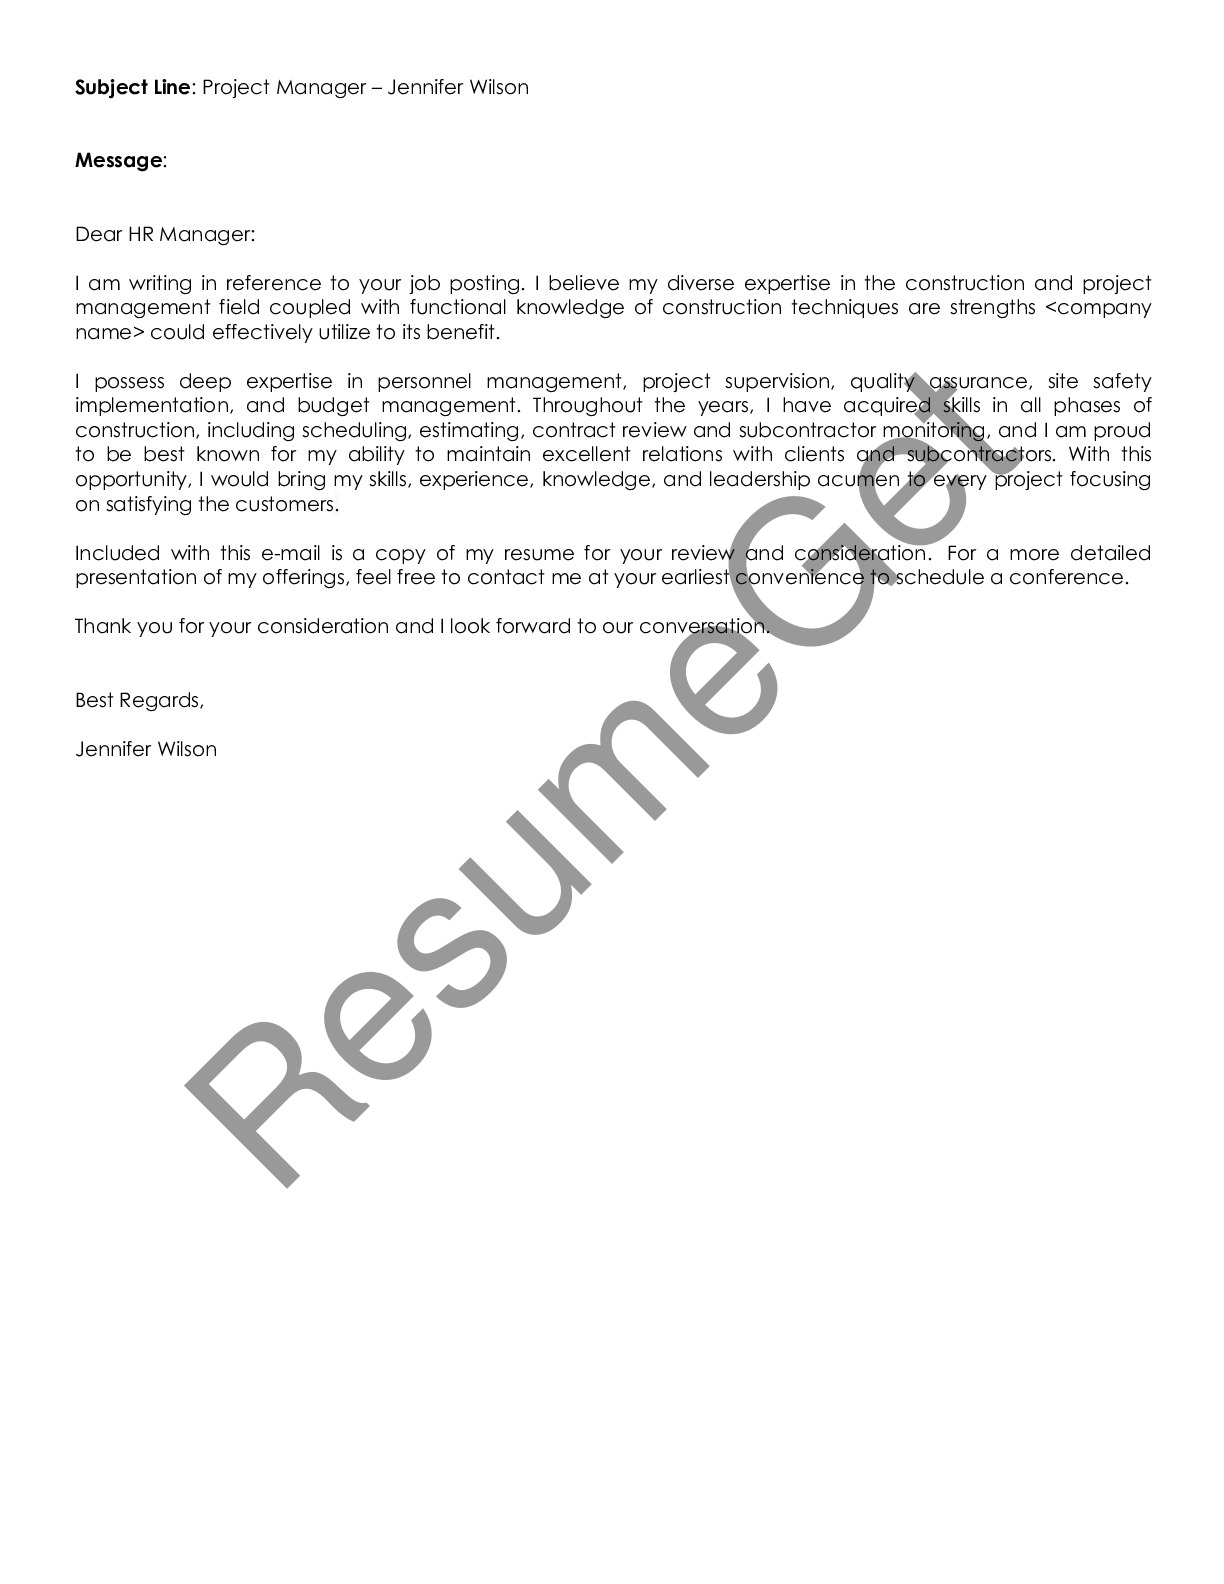 Email Cover Letter Example for Project Manager